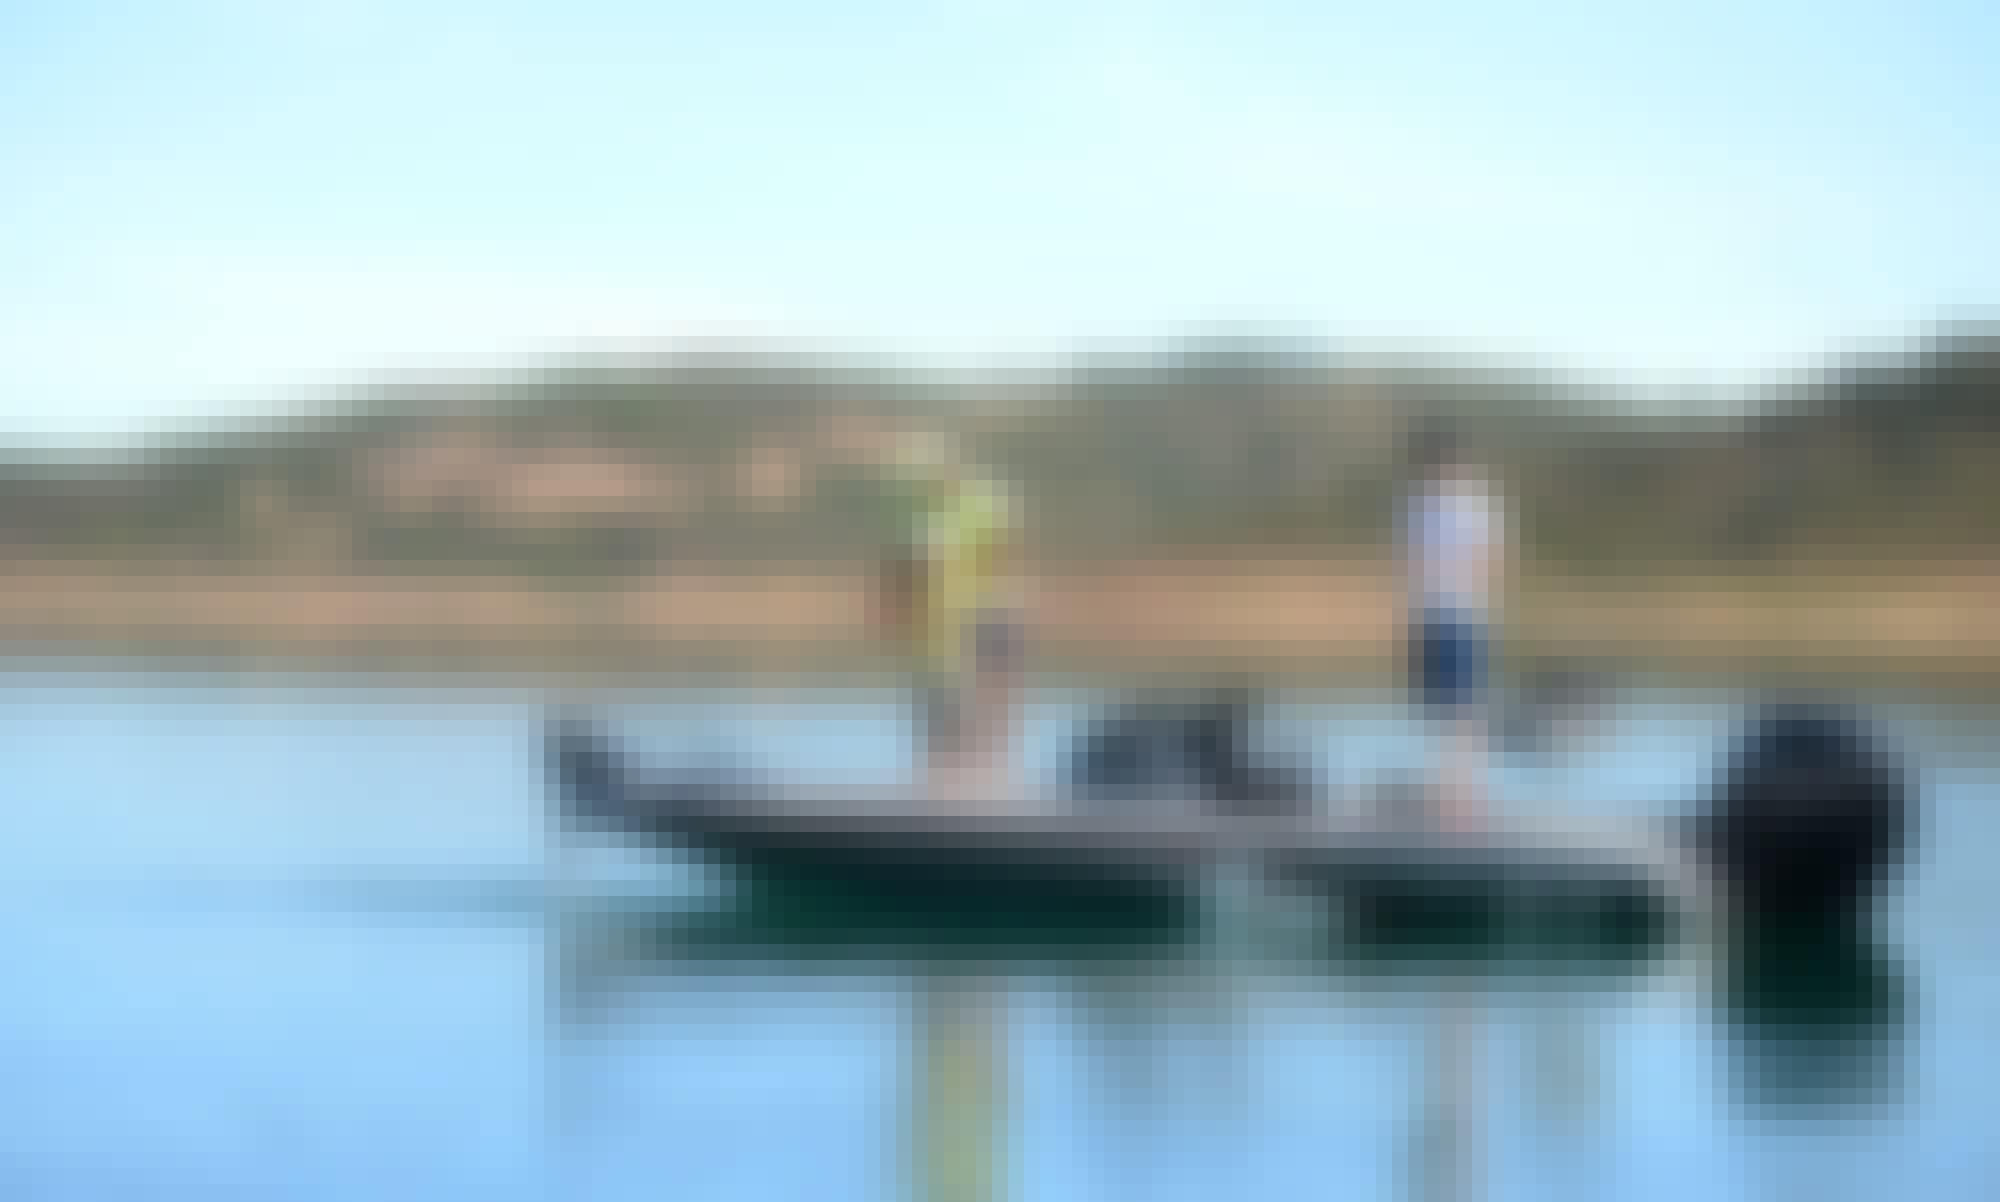 Guided Fishing in Barragem de Santa Clara, Portugal